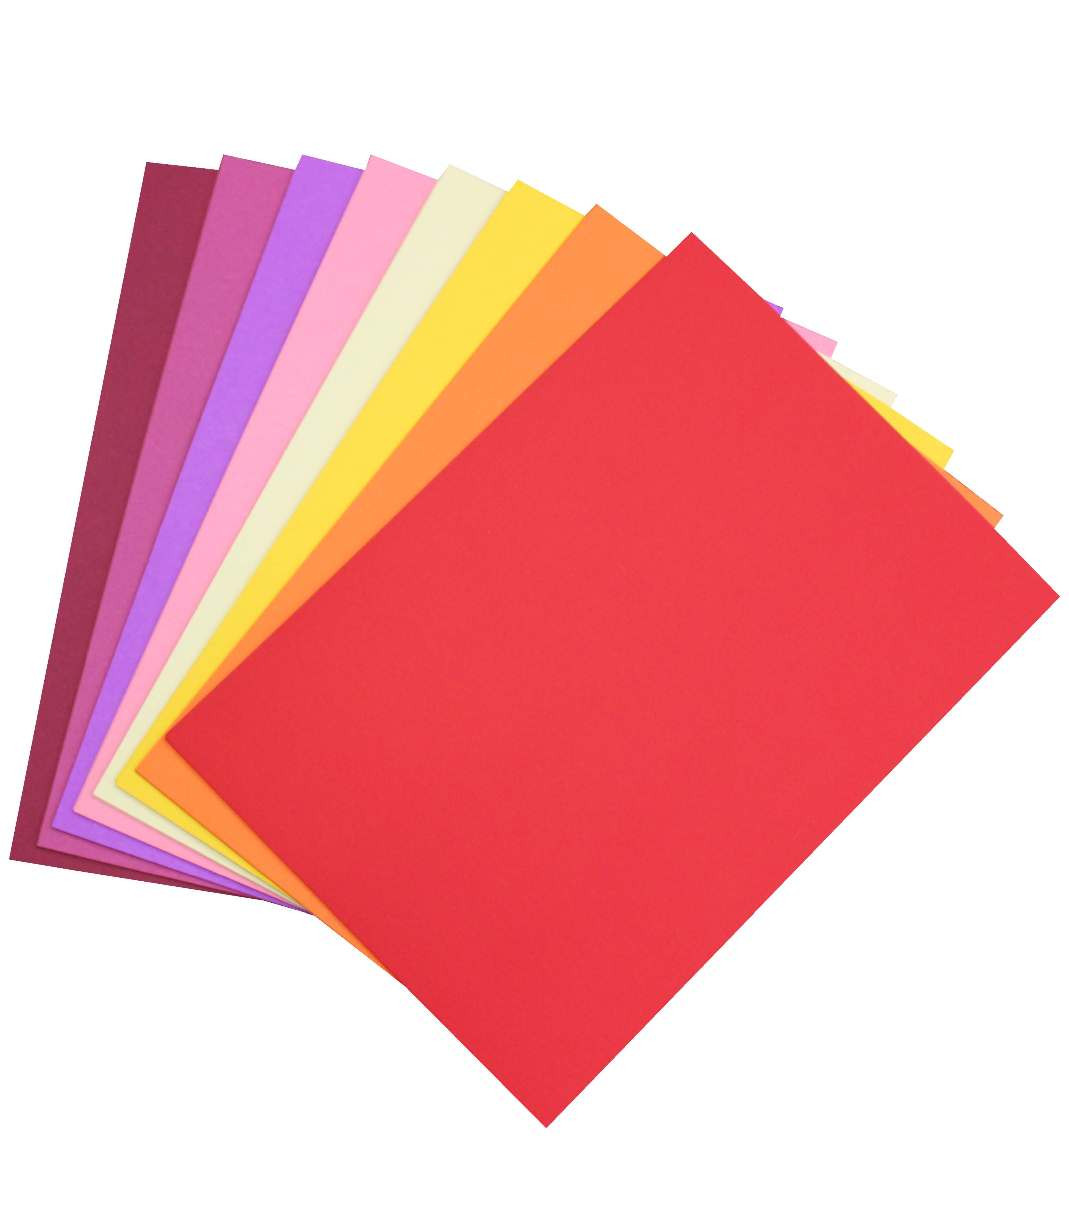 Colourboard 200GSM A4 Assorted Warm Tones (Pack of 50)